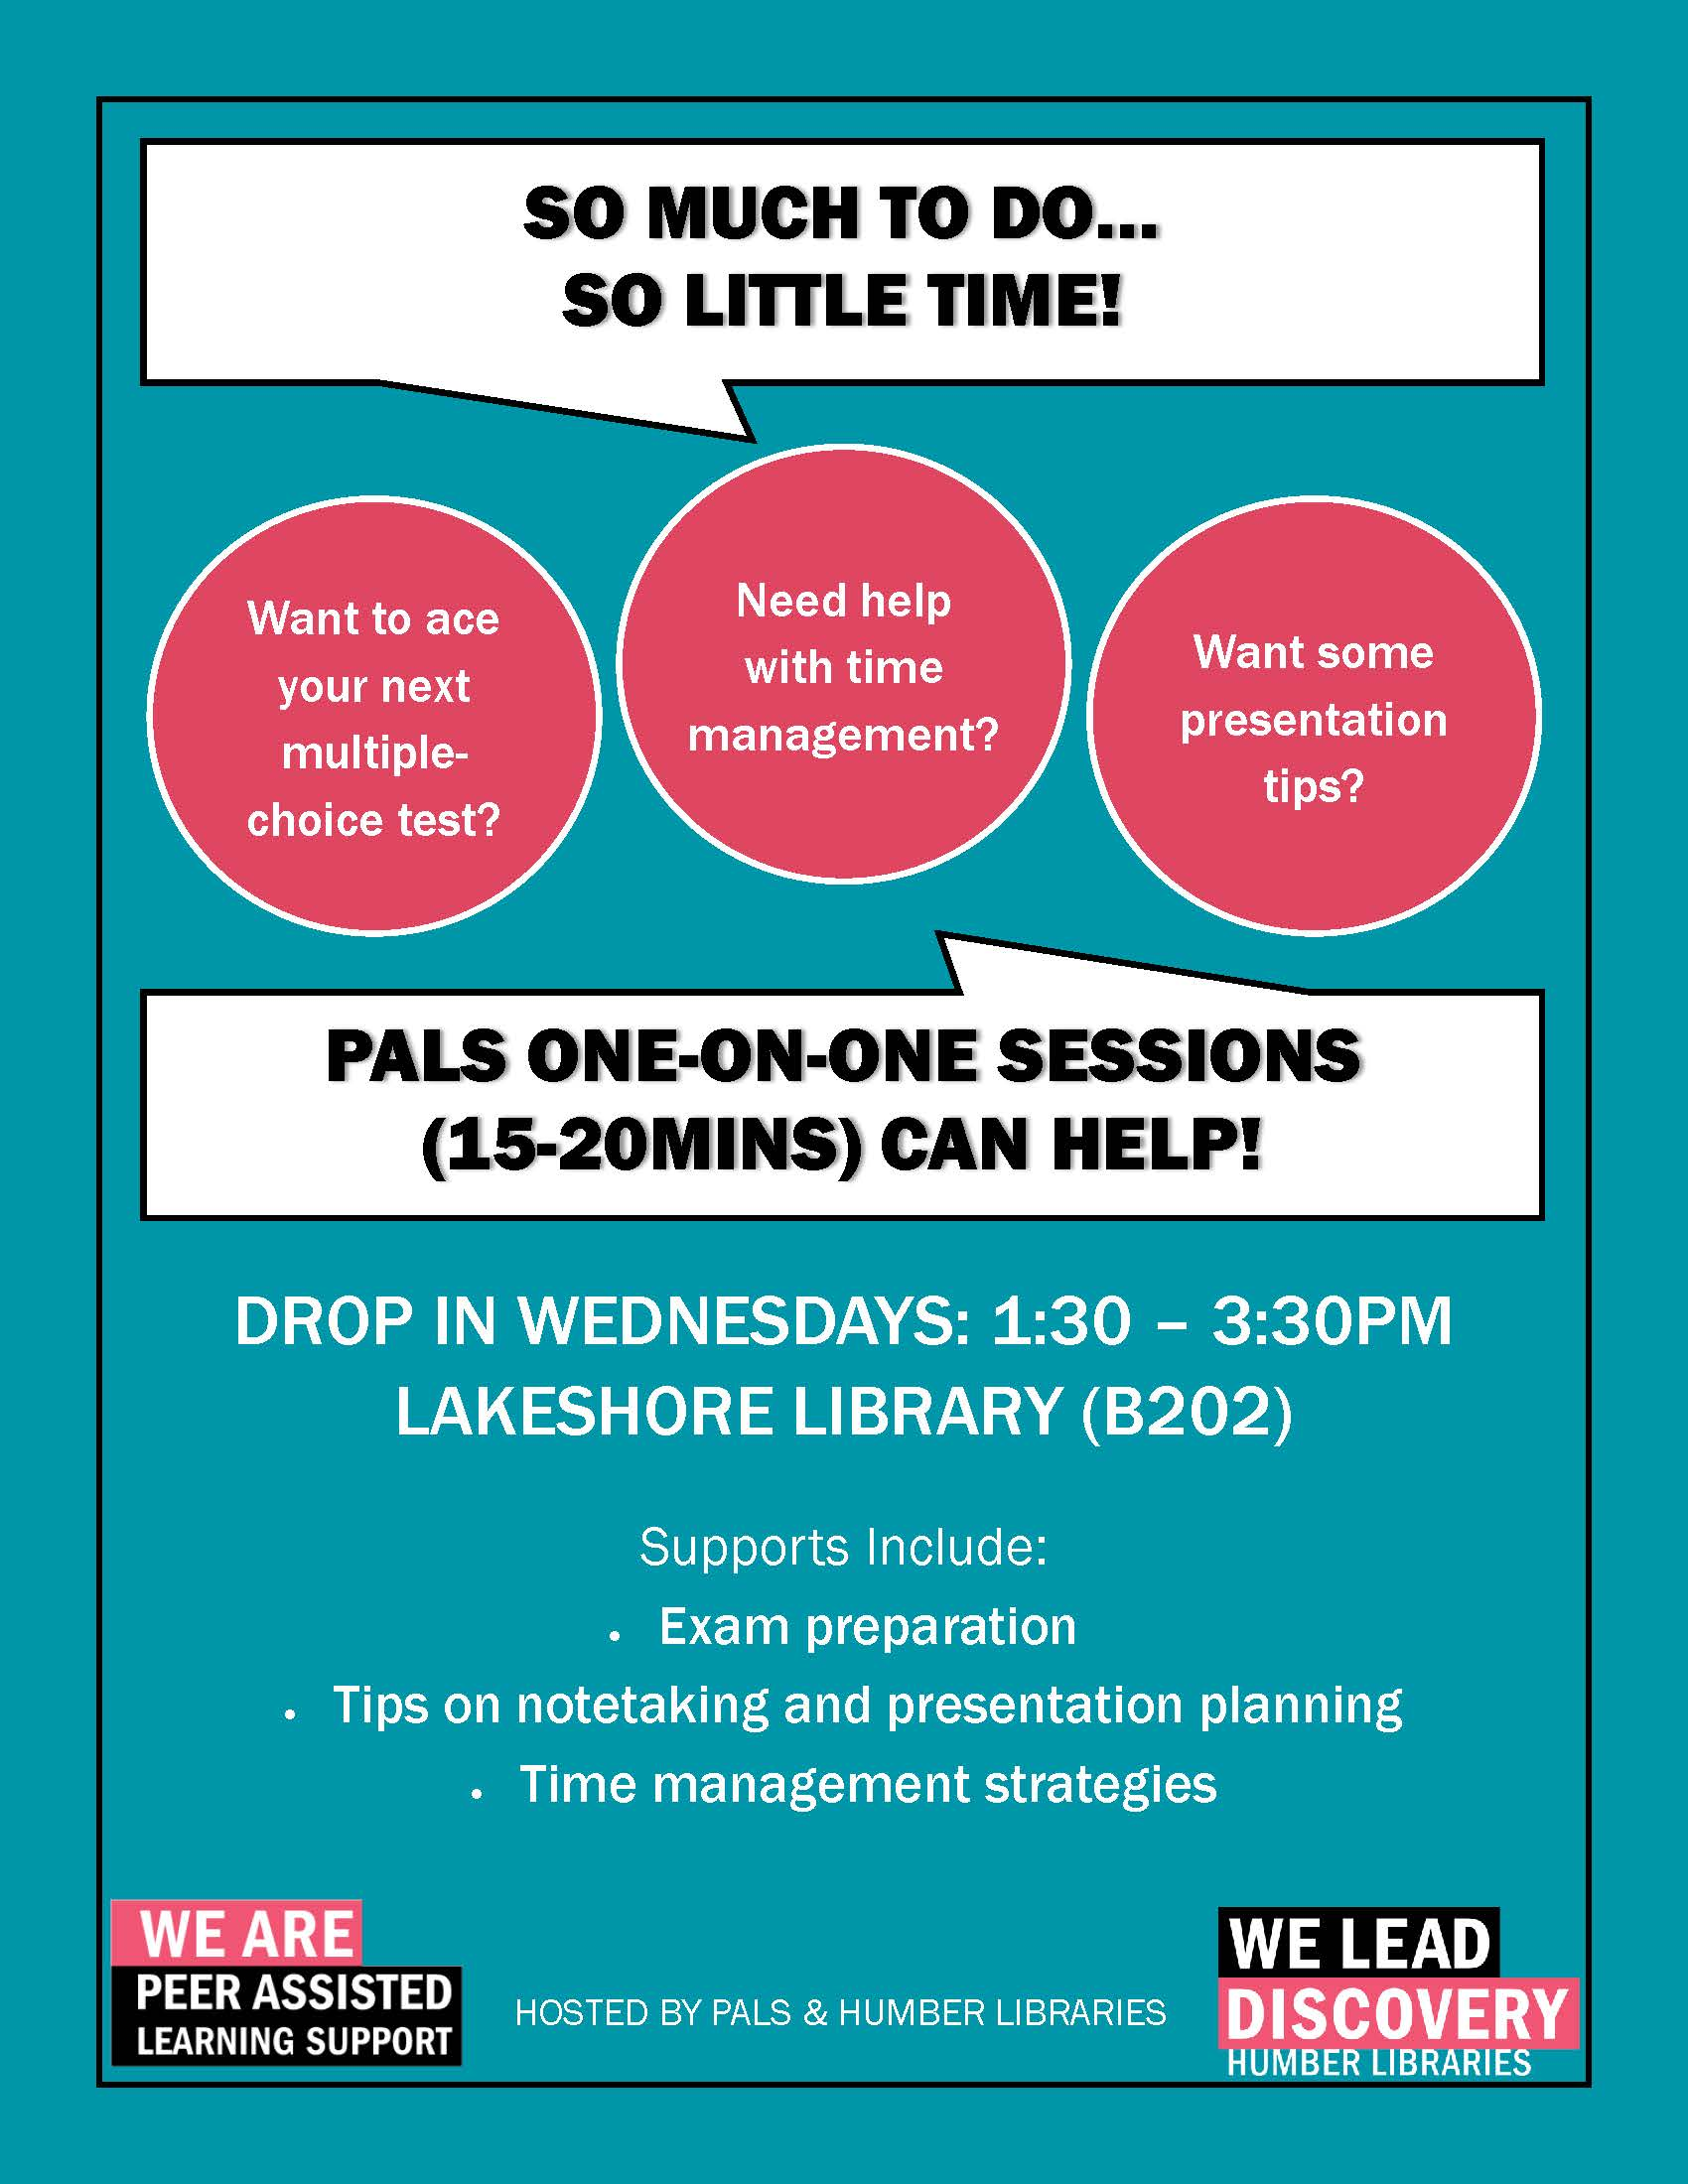 PALS DROP IN ONE-ON-ONE SESSIONS AT LAKESHORE LIBRARY